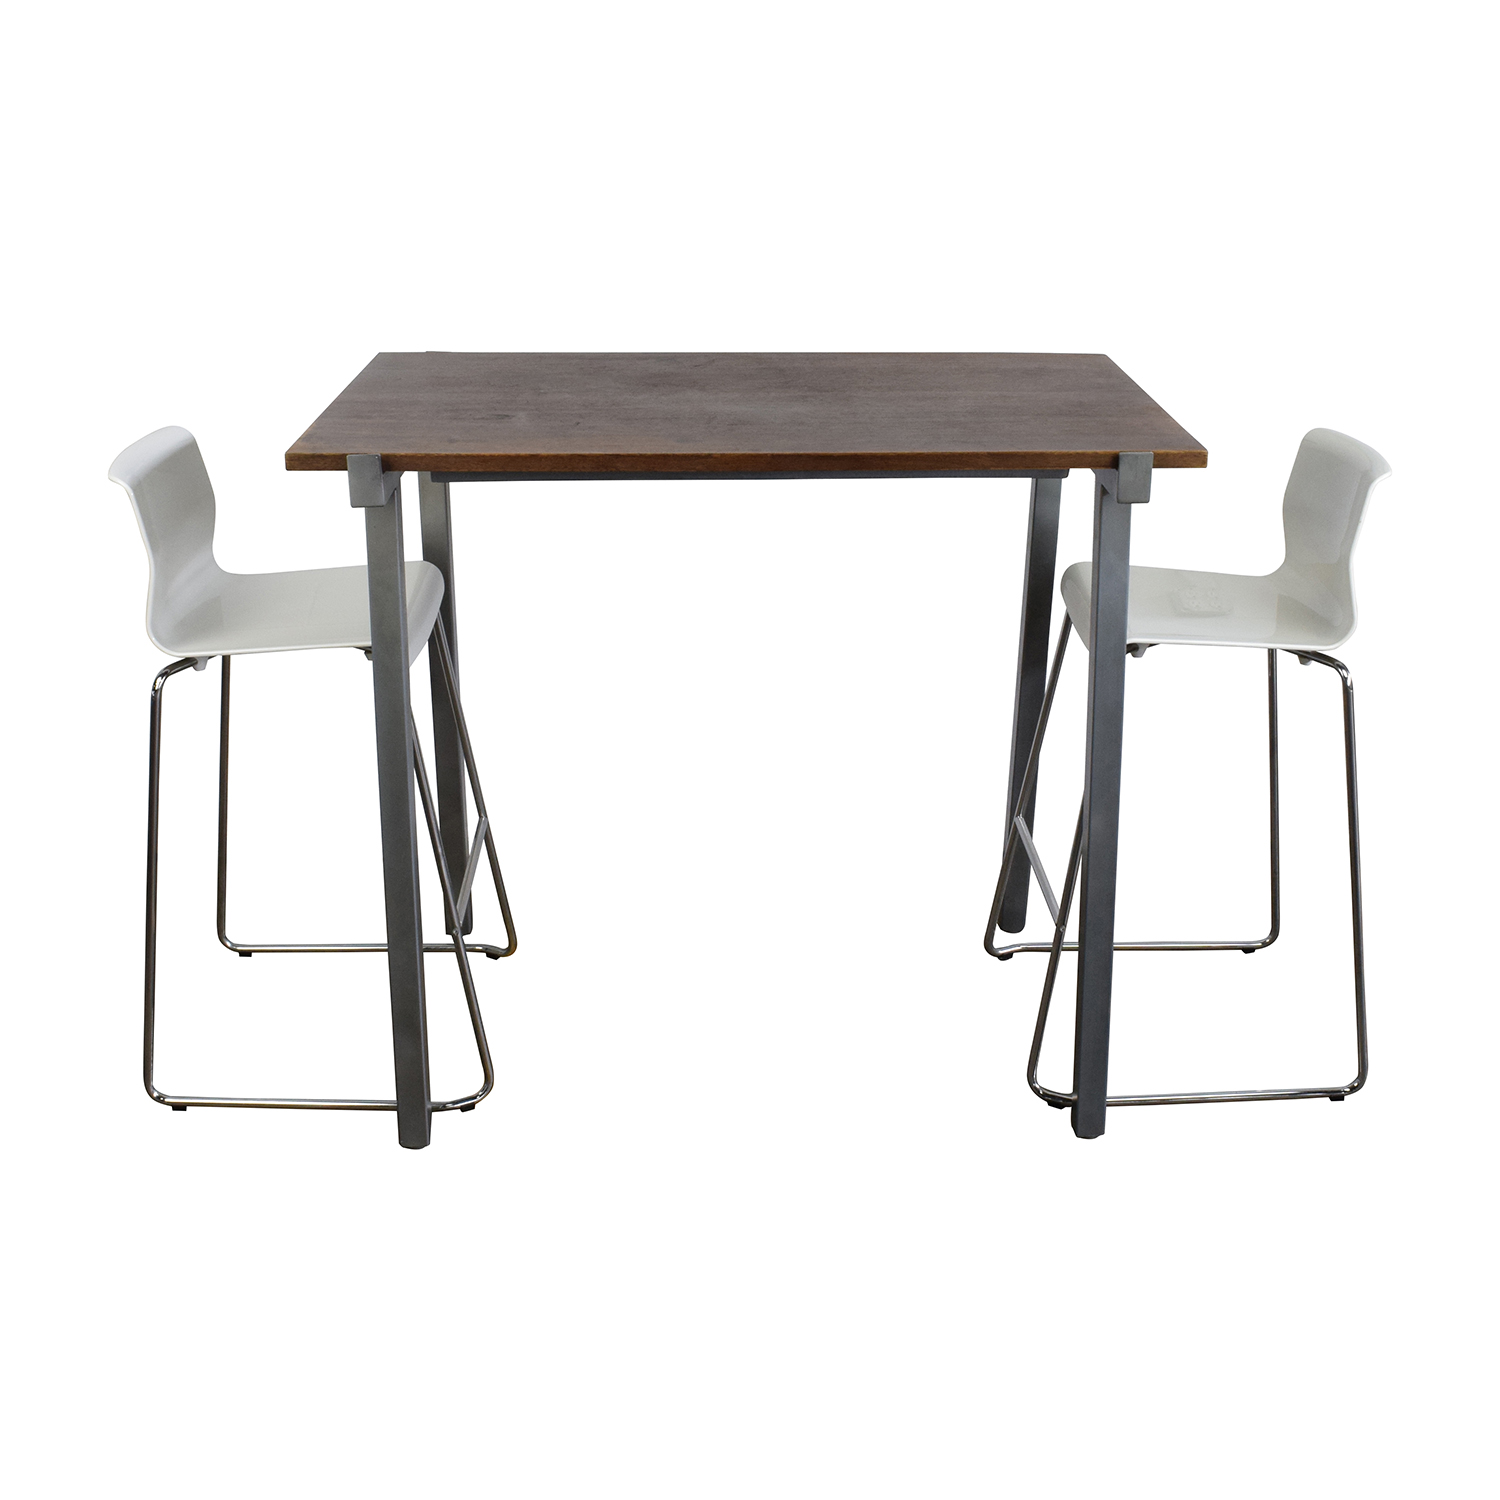 buy CB2 High Dining Table and Chairs Set CB2 Dinner Tables